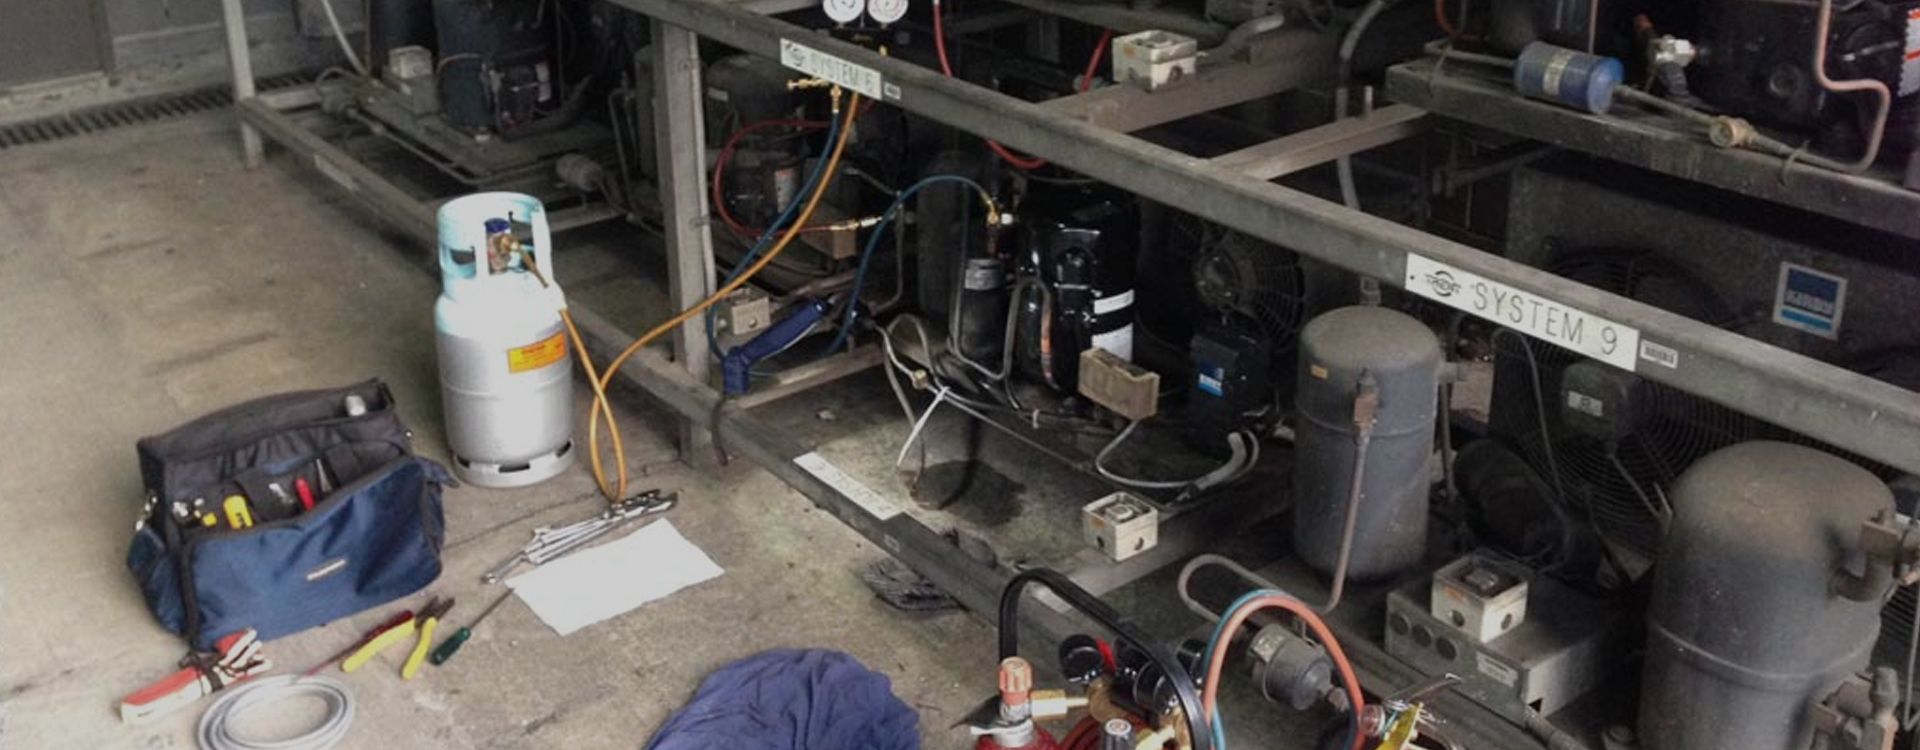 Pin by wservetech on HVAC Contractors Lawrenceville GA